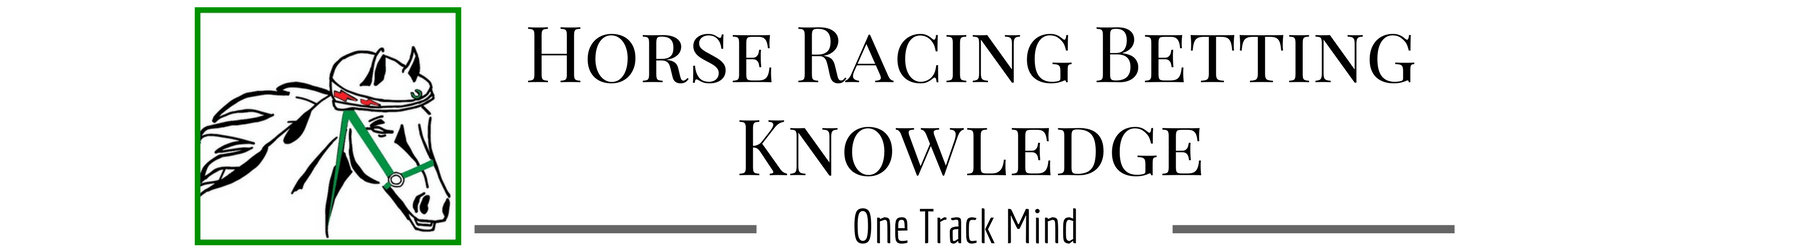 Horse Racing Blog for All Fans - Horse Racing Betting Knowledge